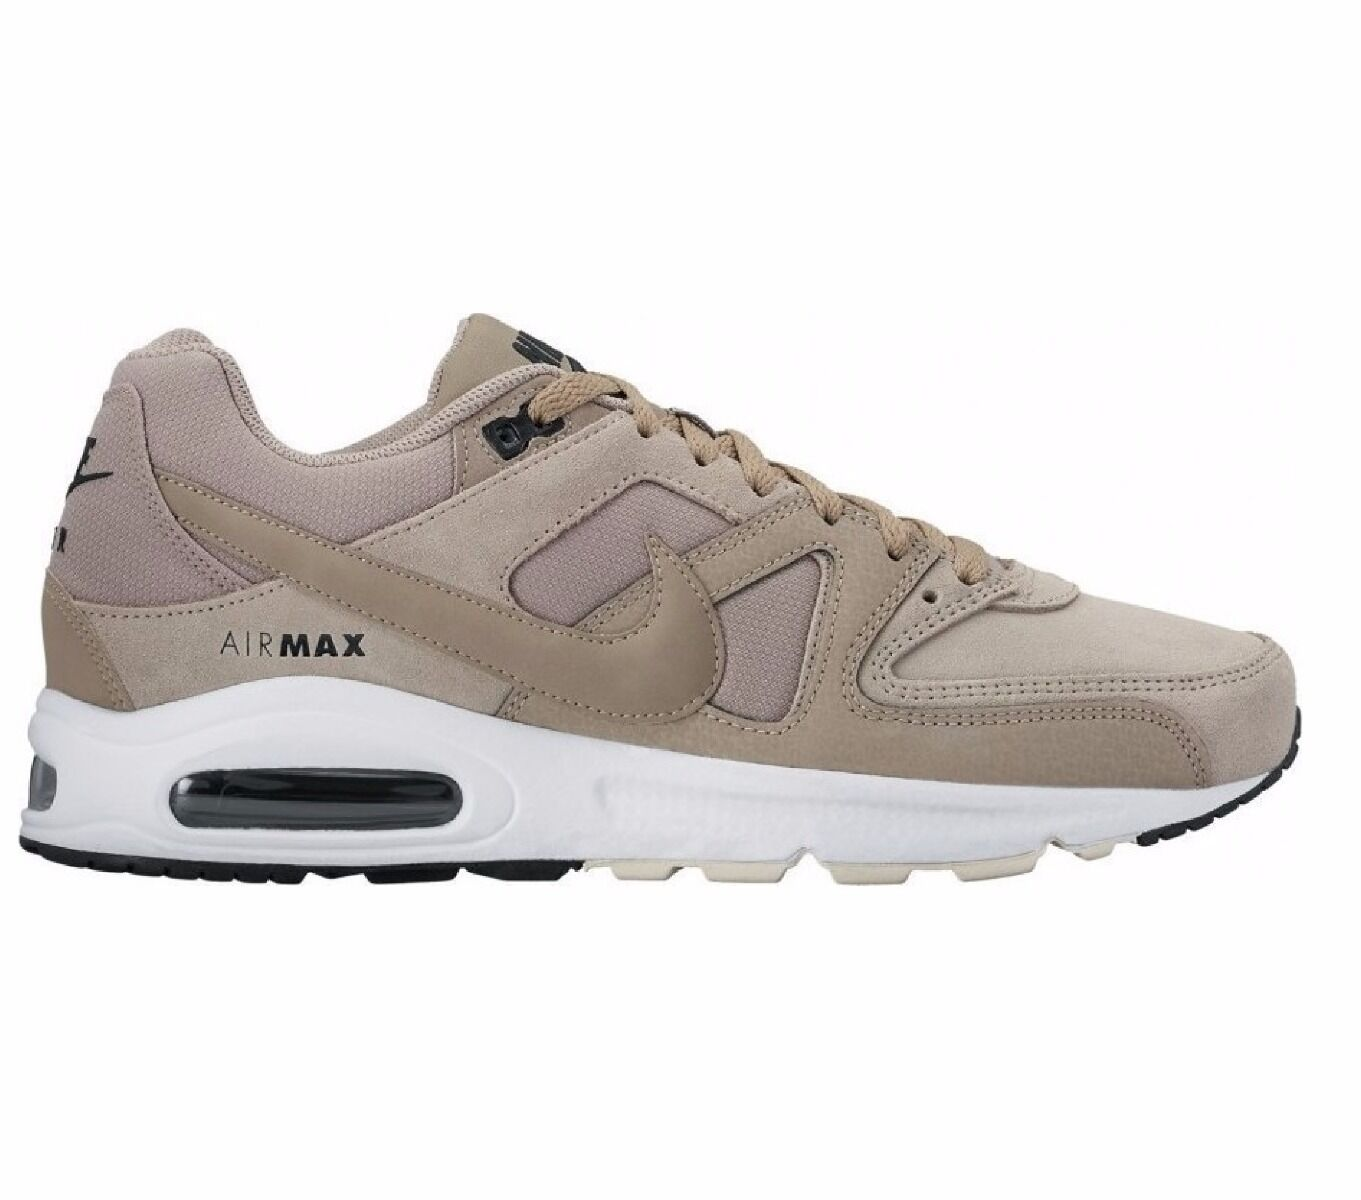 NIKE AIR MAX COMMAND RUNNING TRAINER MENS SHOE SIZE 7 - 11 RRP £115/- NEW RUN